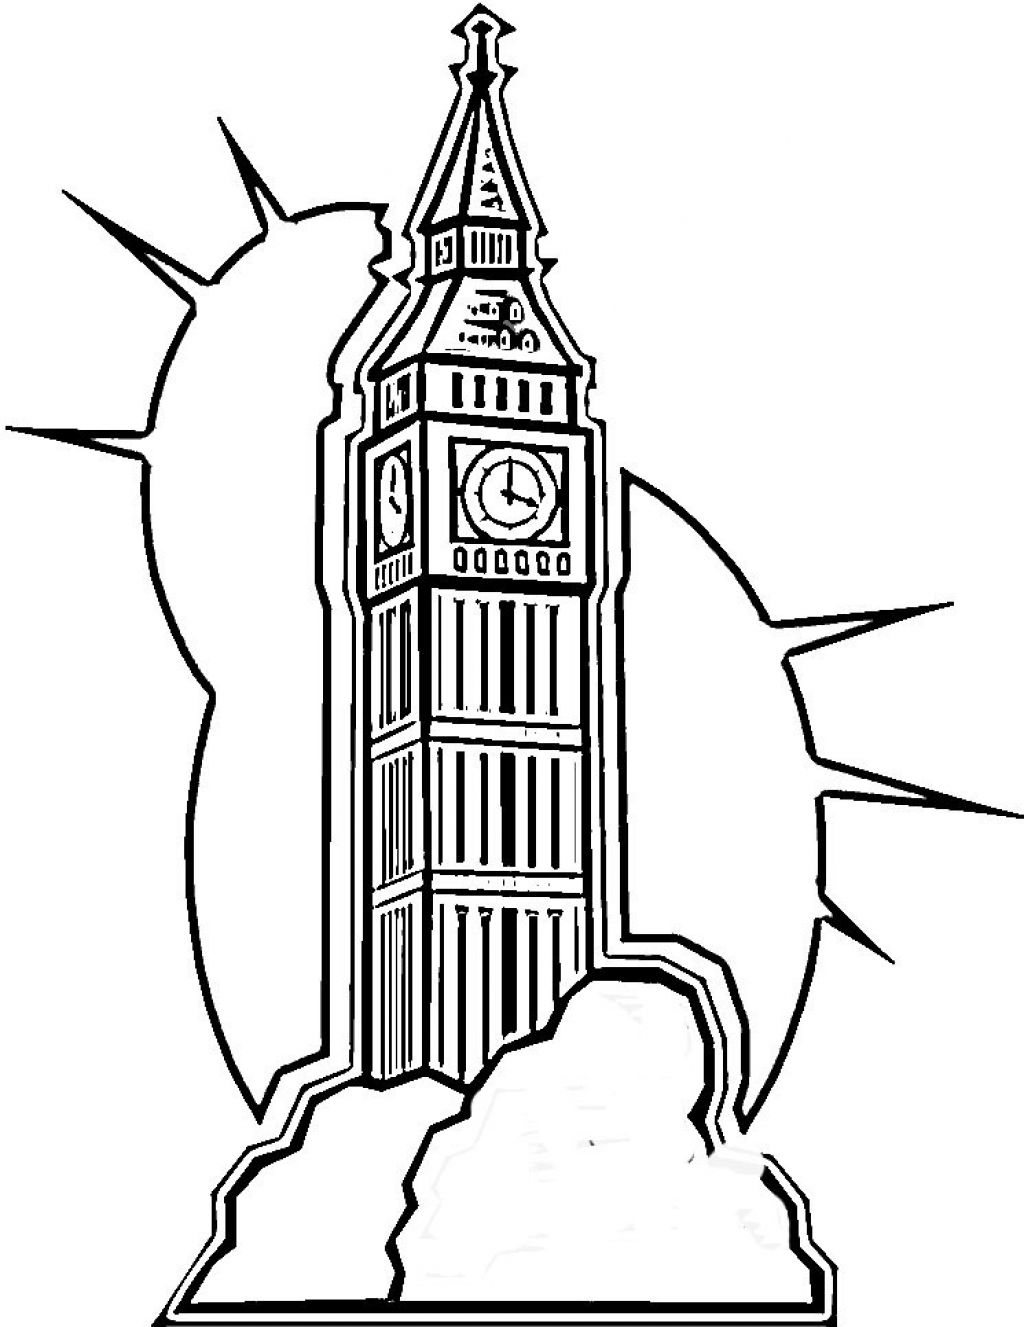 uk coloring pages - photo#48